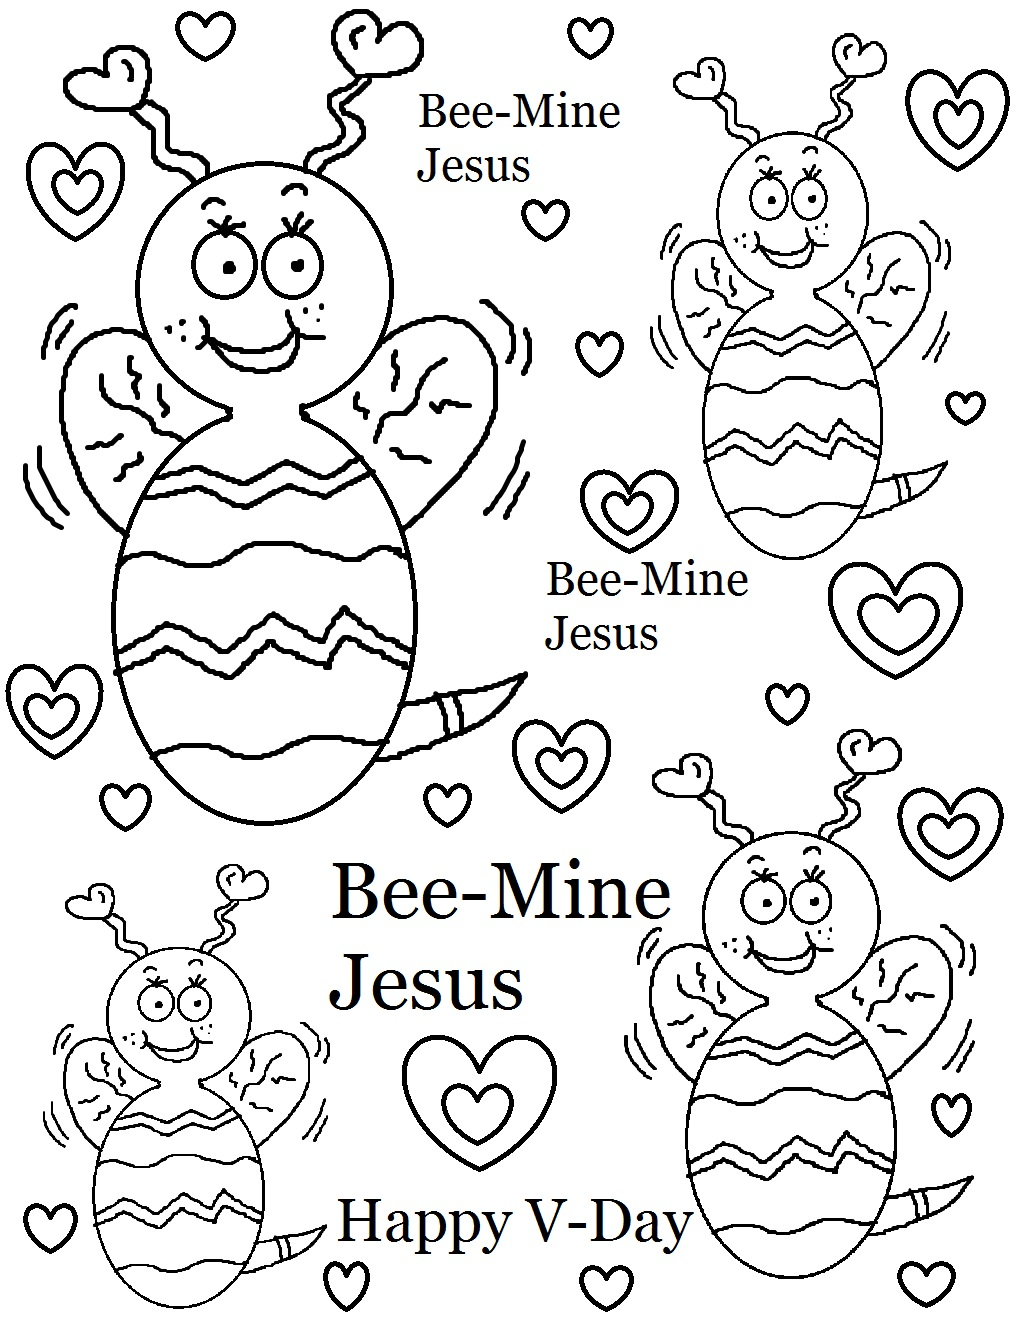 download valentine coloring pages 14 - Coloring Activities For Children